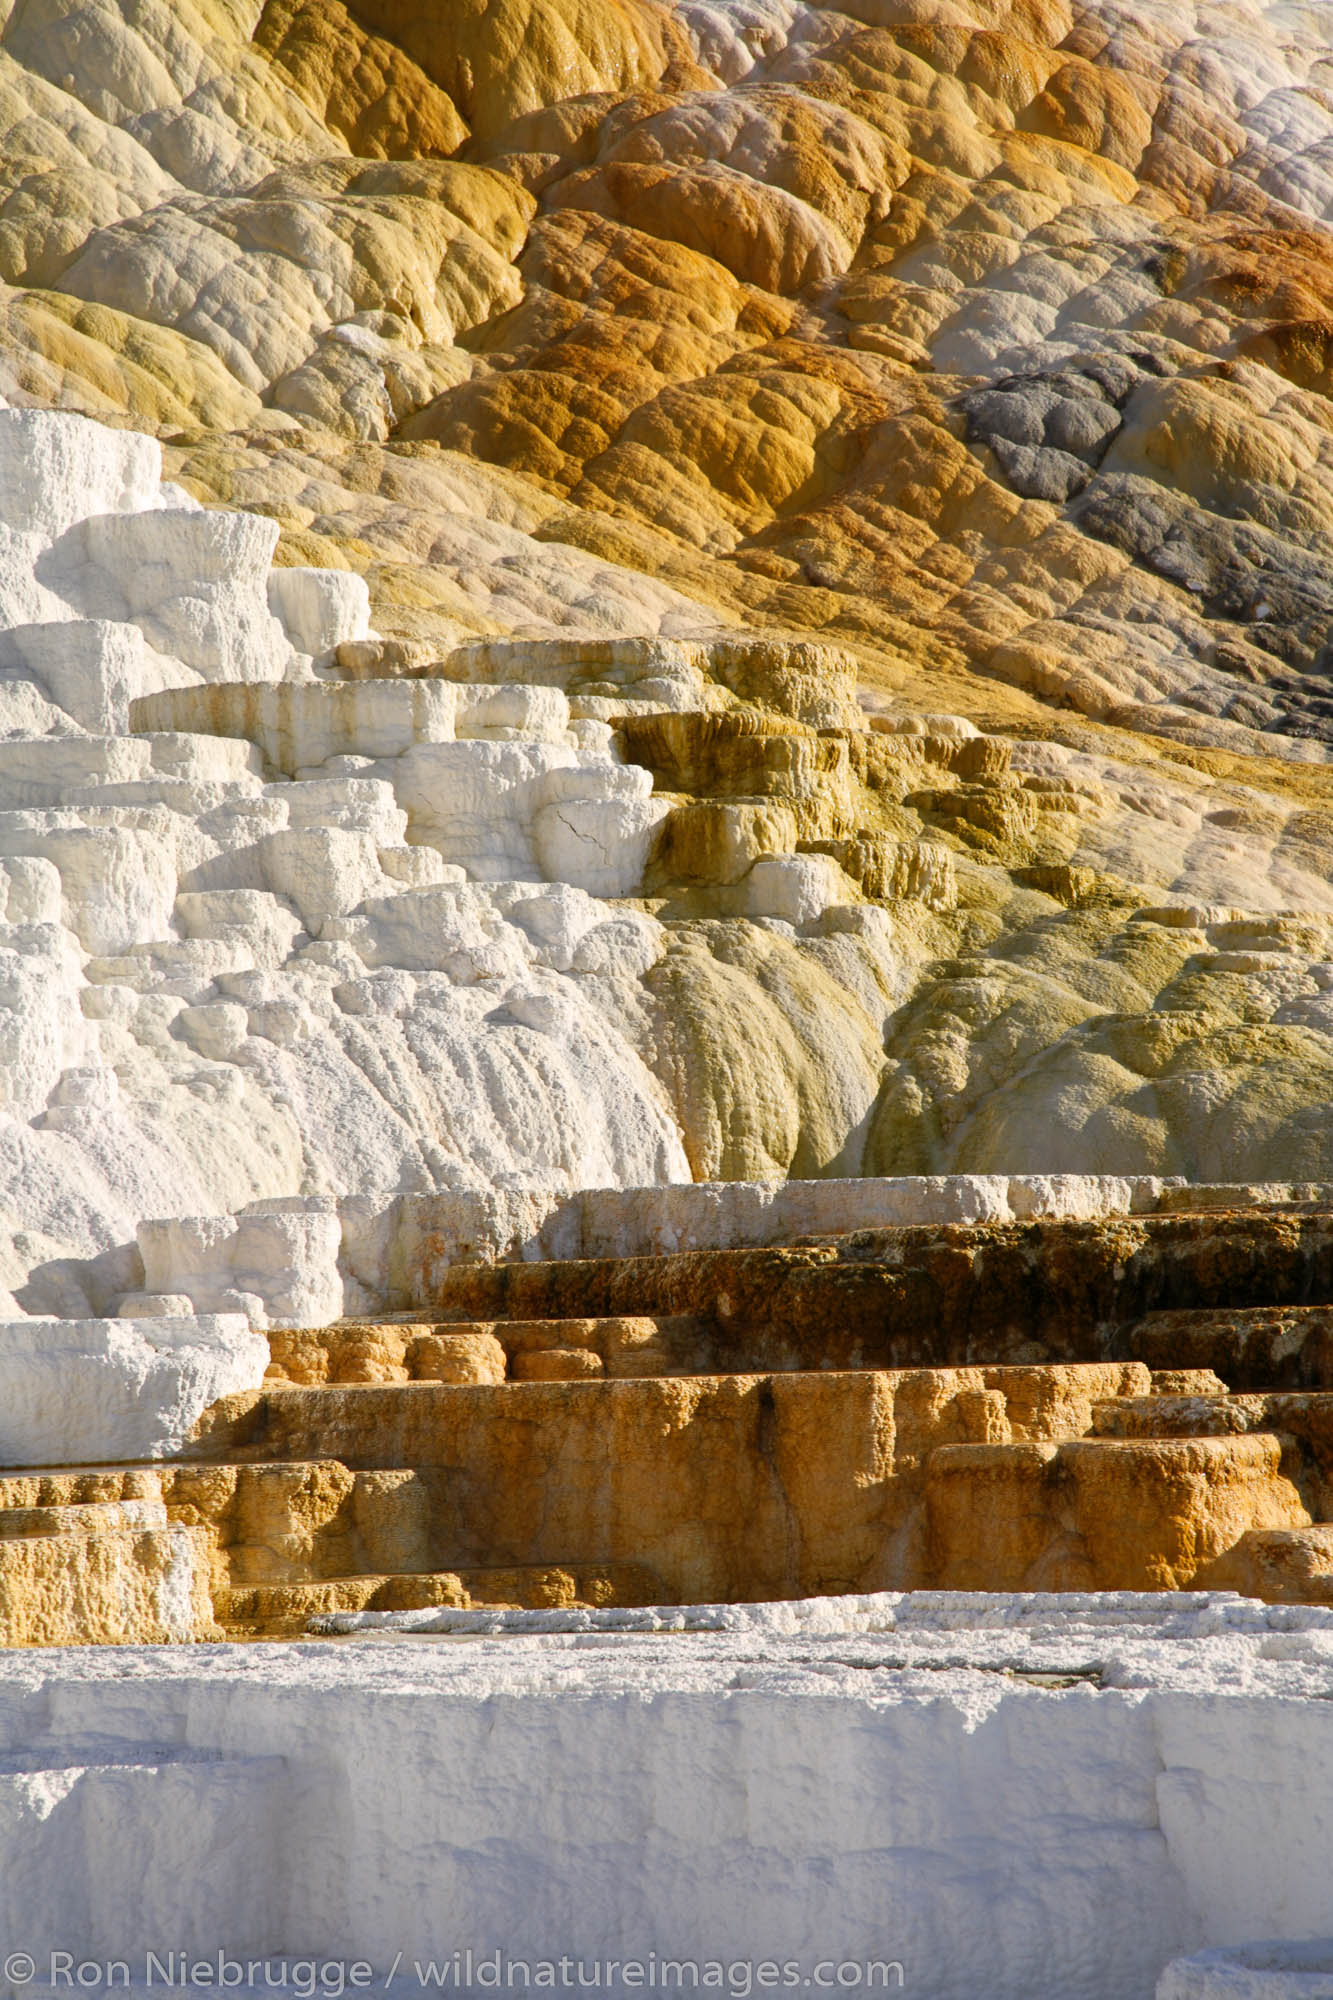 The Lower Terrace Area of Mammoth Hot Springs, Yellowstone National Park, Wyoming.